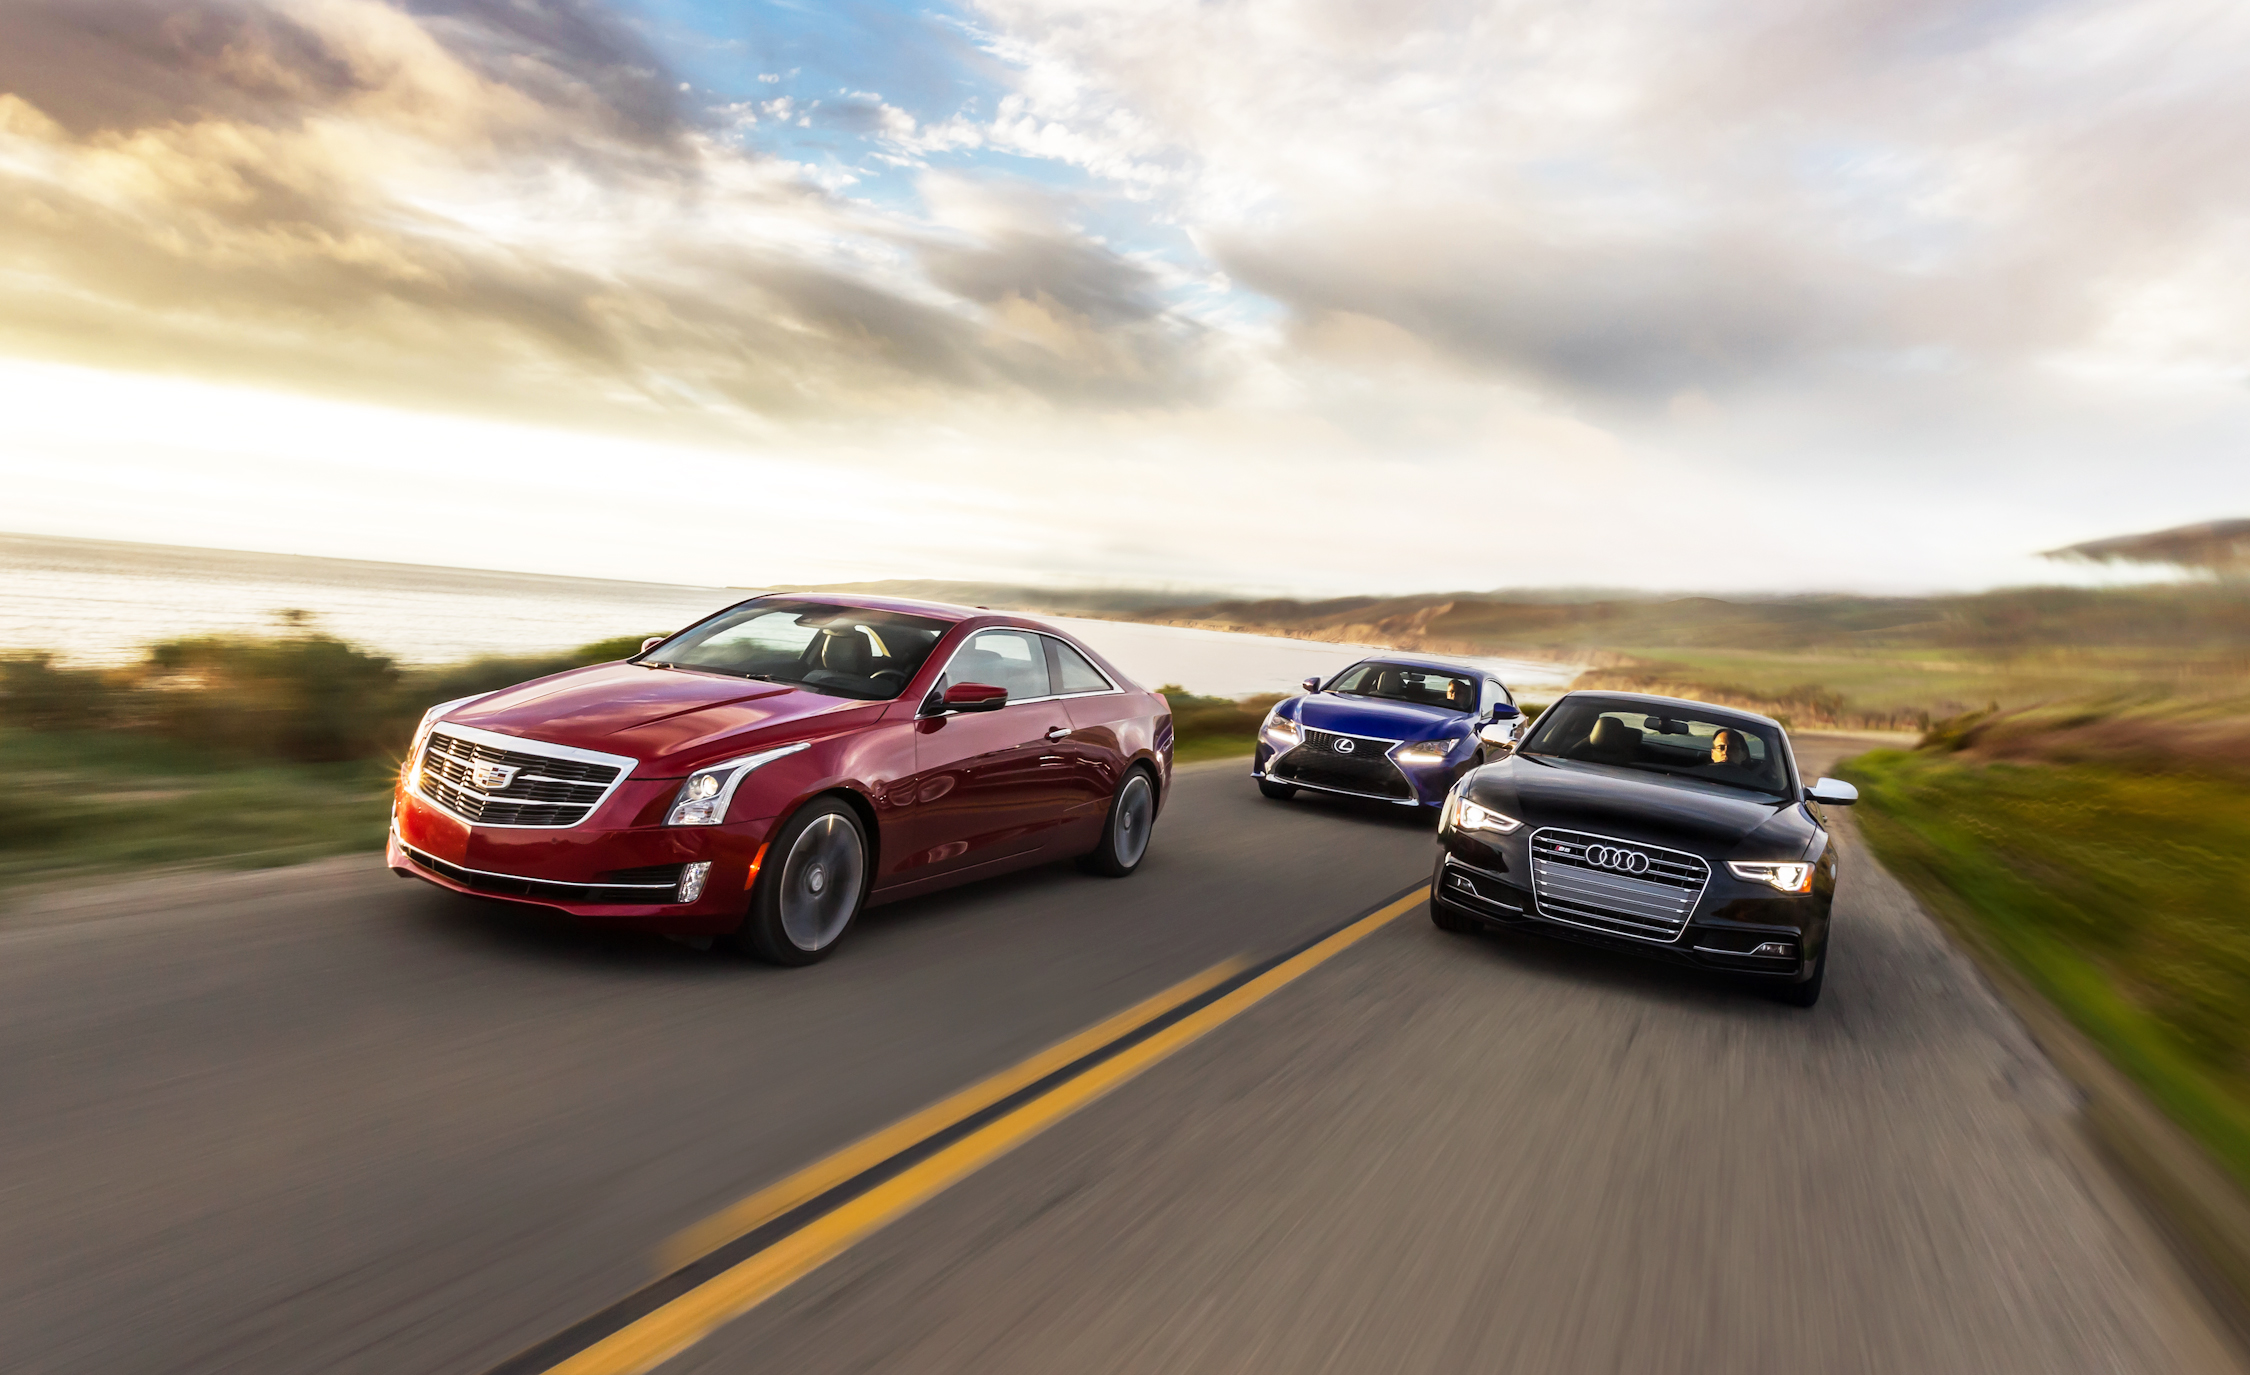 2015 Cadillac ATS Coupe 3.6 vs 2015 Lexus RC350 F vs 2015 Audi S5